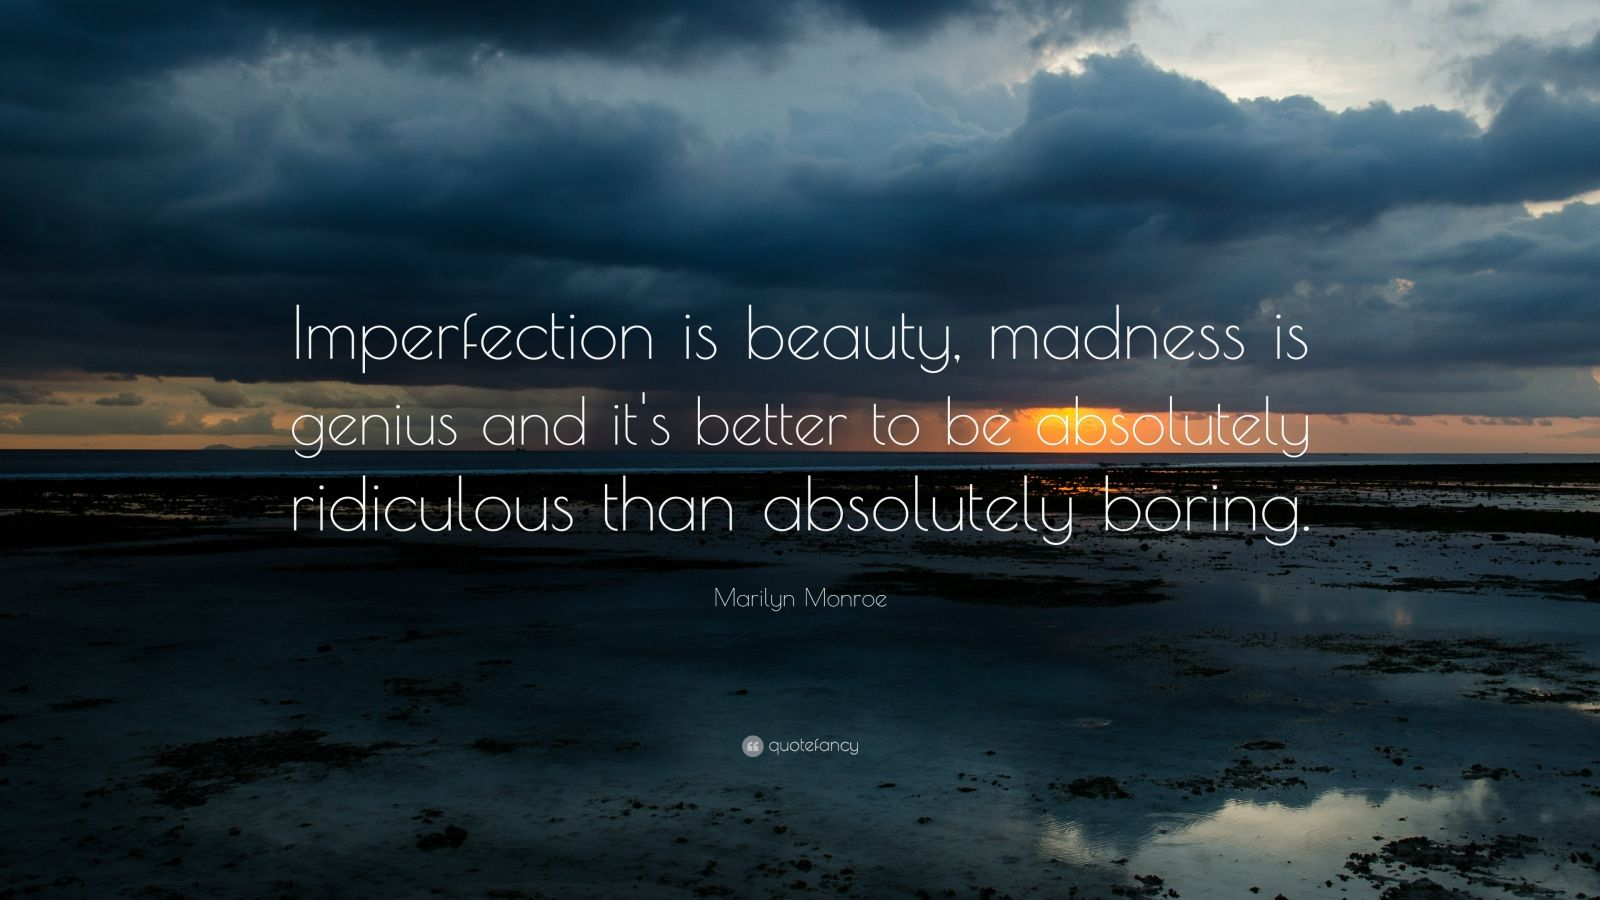 Osho Hd Wallpaper Marilyn Monroe Quote Imperfection Is Beauty Madness Is